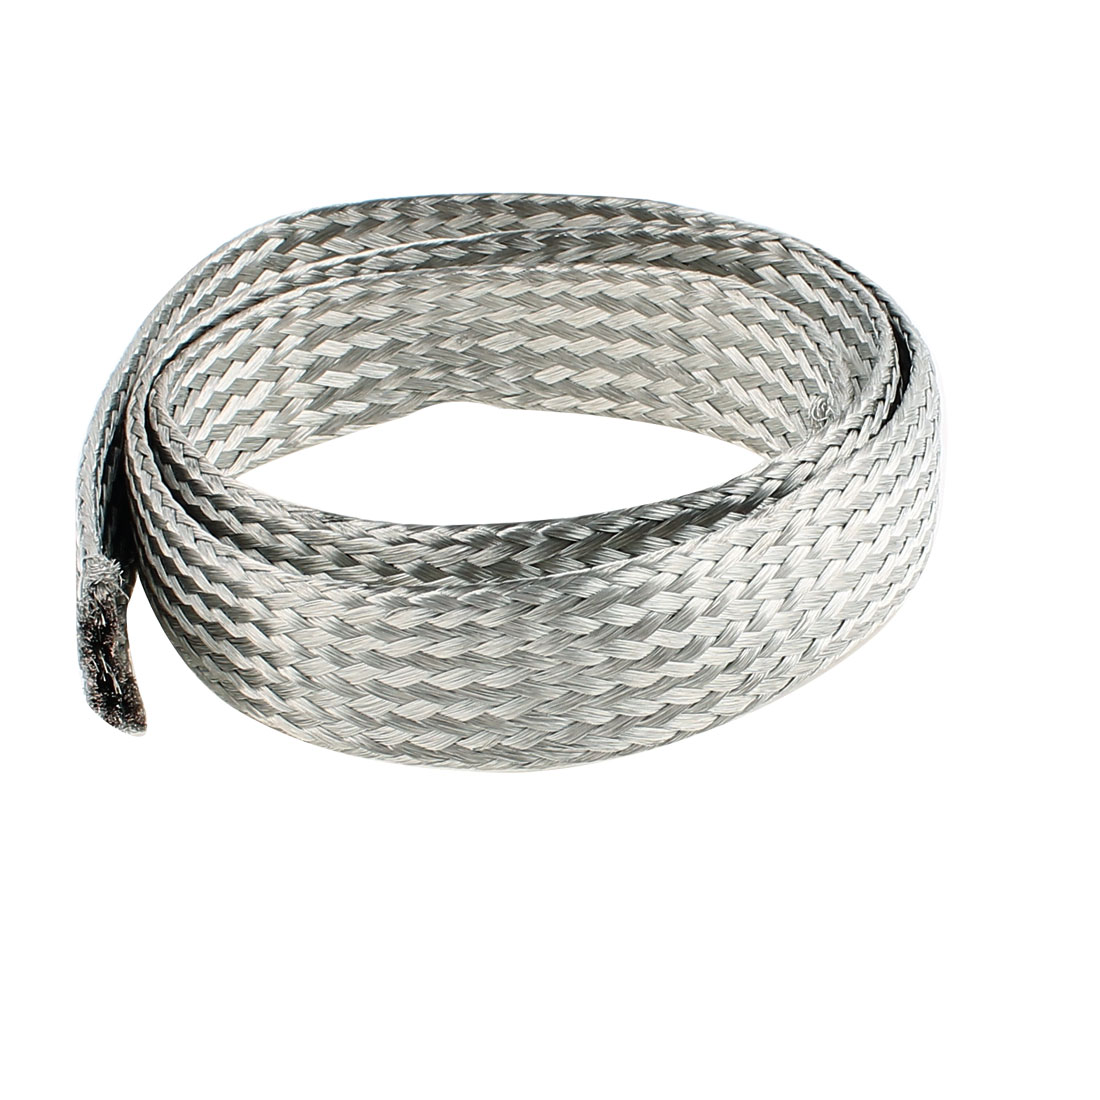 25 Square Millimeter Thickness 1M Length Flat Bare Tined Braided Copper Wire